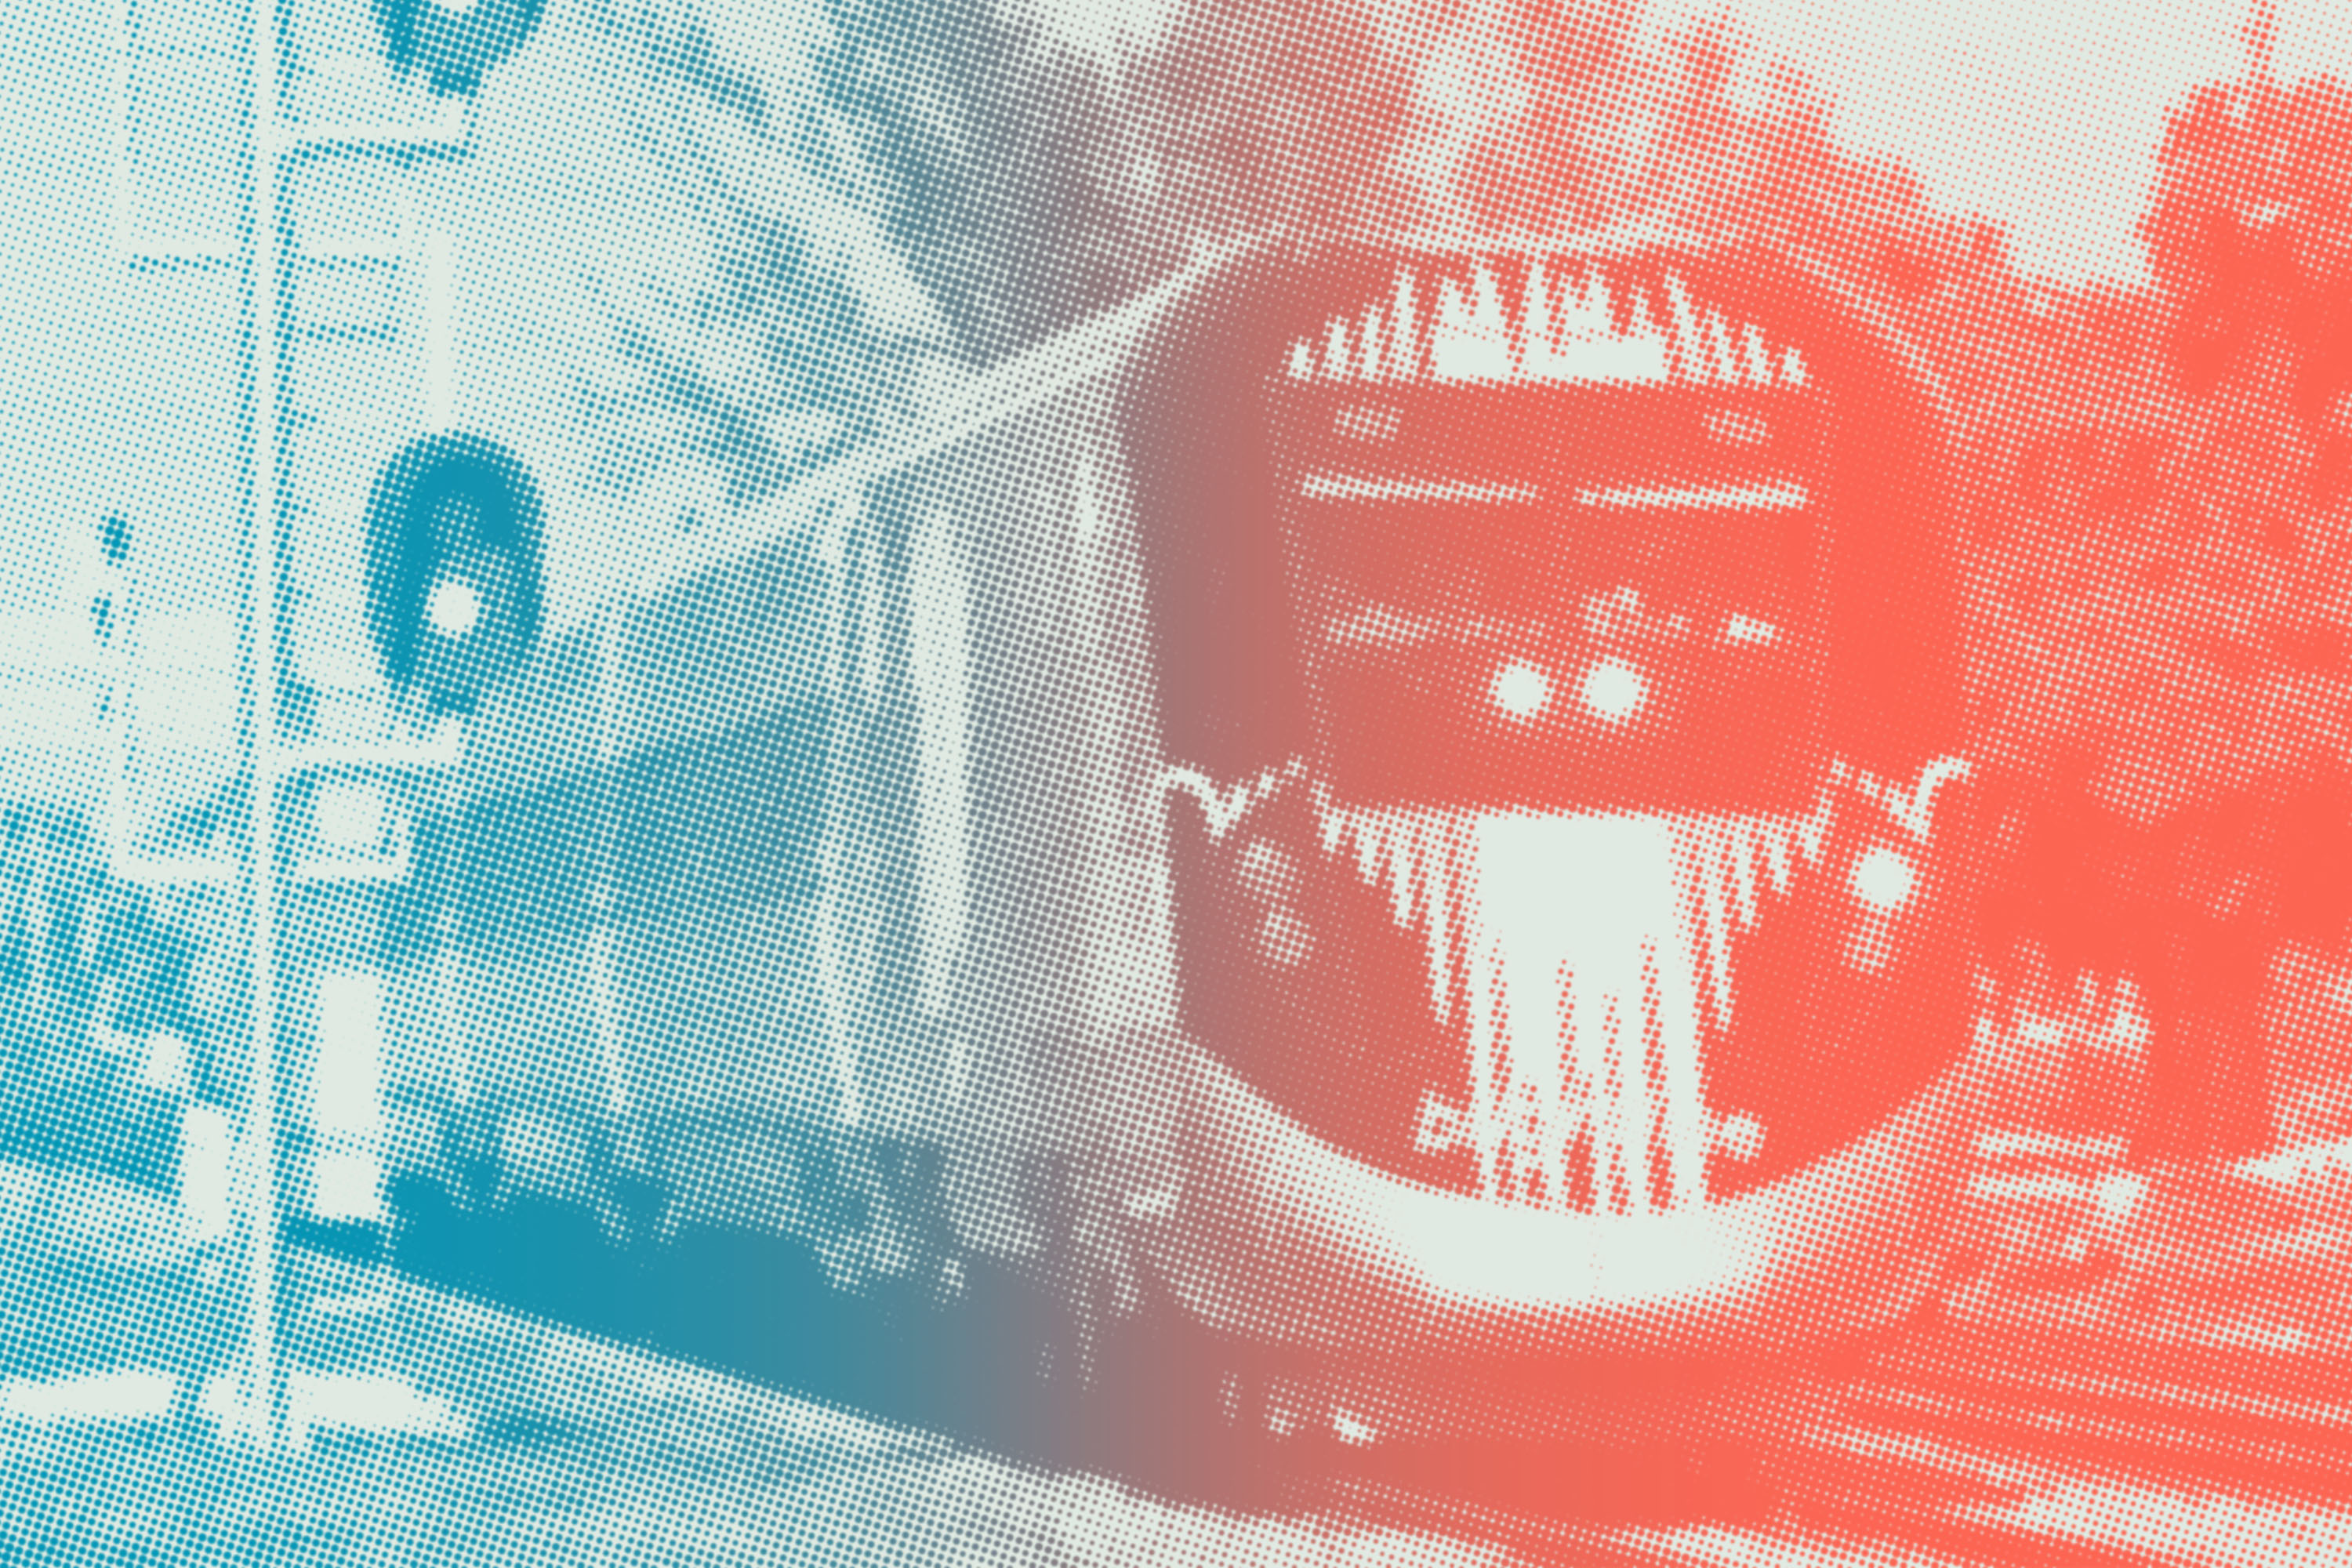 A sleek, aerodynamic high-speed rail train in Florida passes through an intersection. The photo has a graphic red and blue treatment themed to the election.